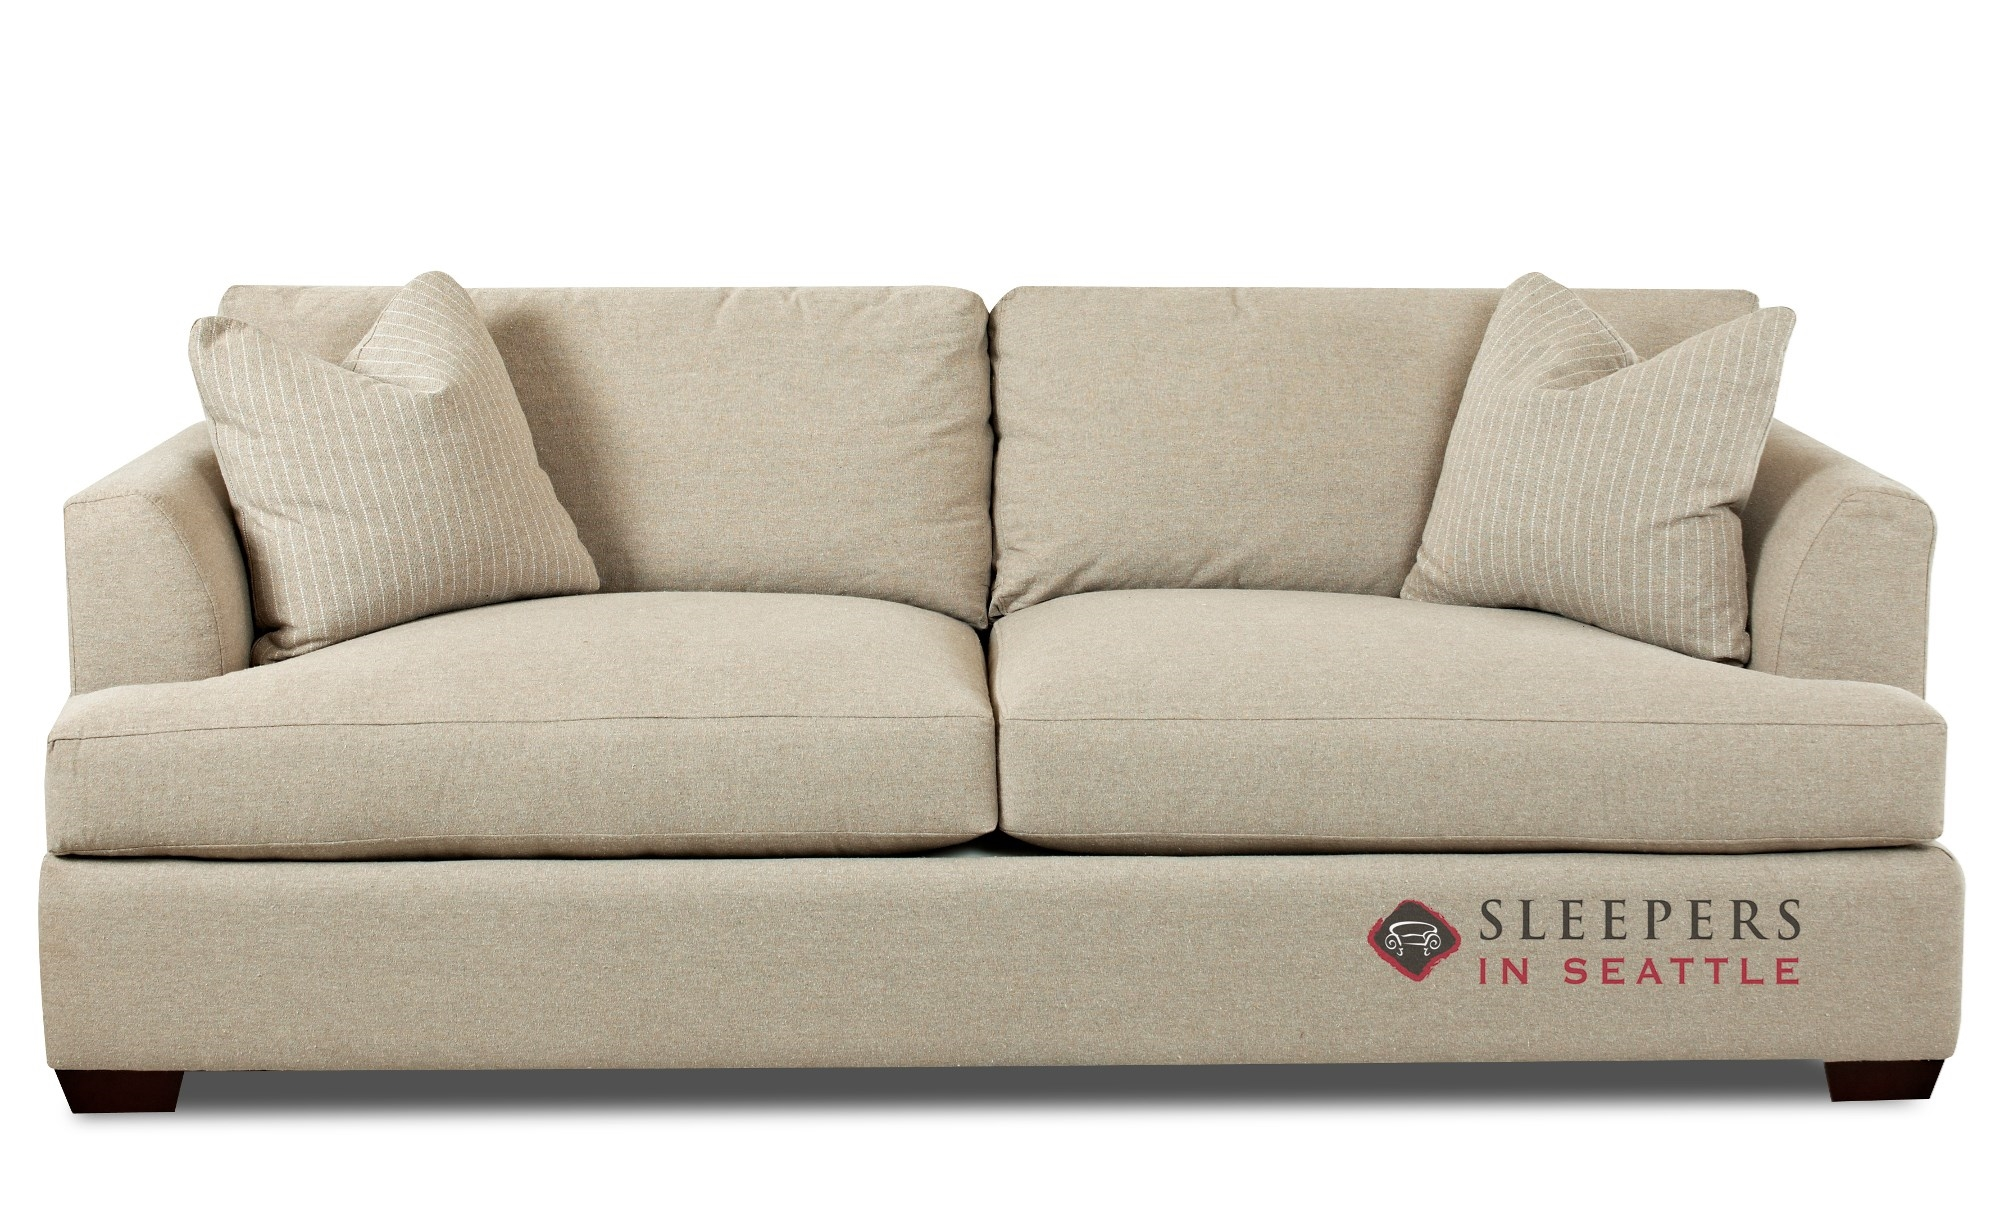 Sofa Repair Seattle Savvy Berkeley Queen Sleeper Sofa With Down Feather Seating